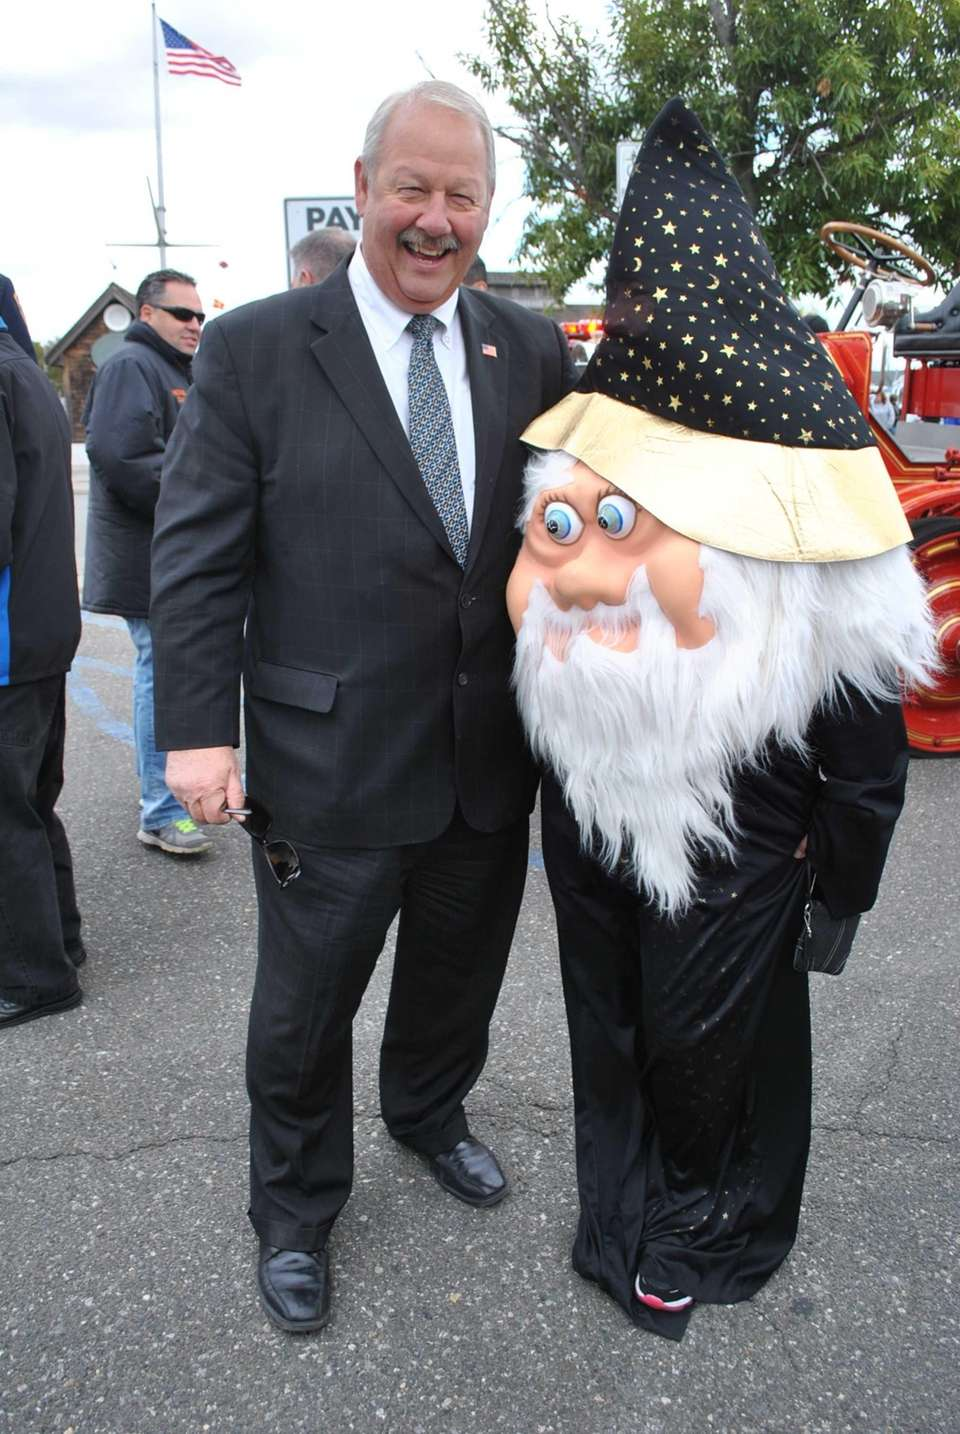 Mayor Kennedy with a wizard